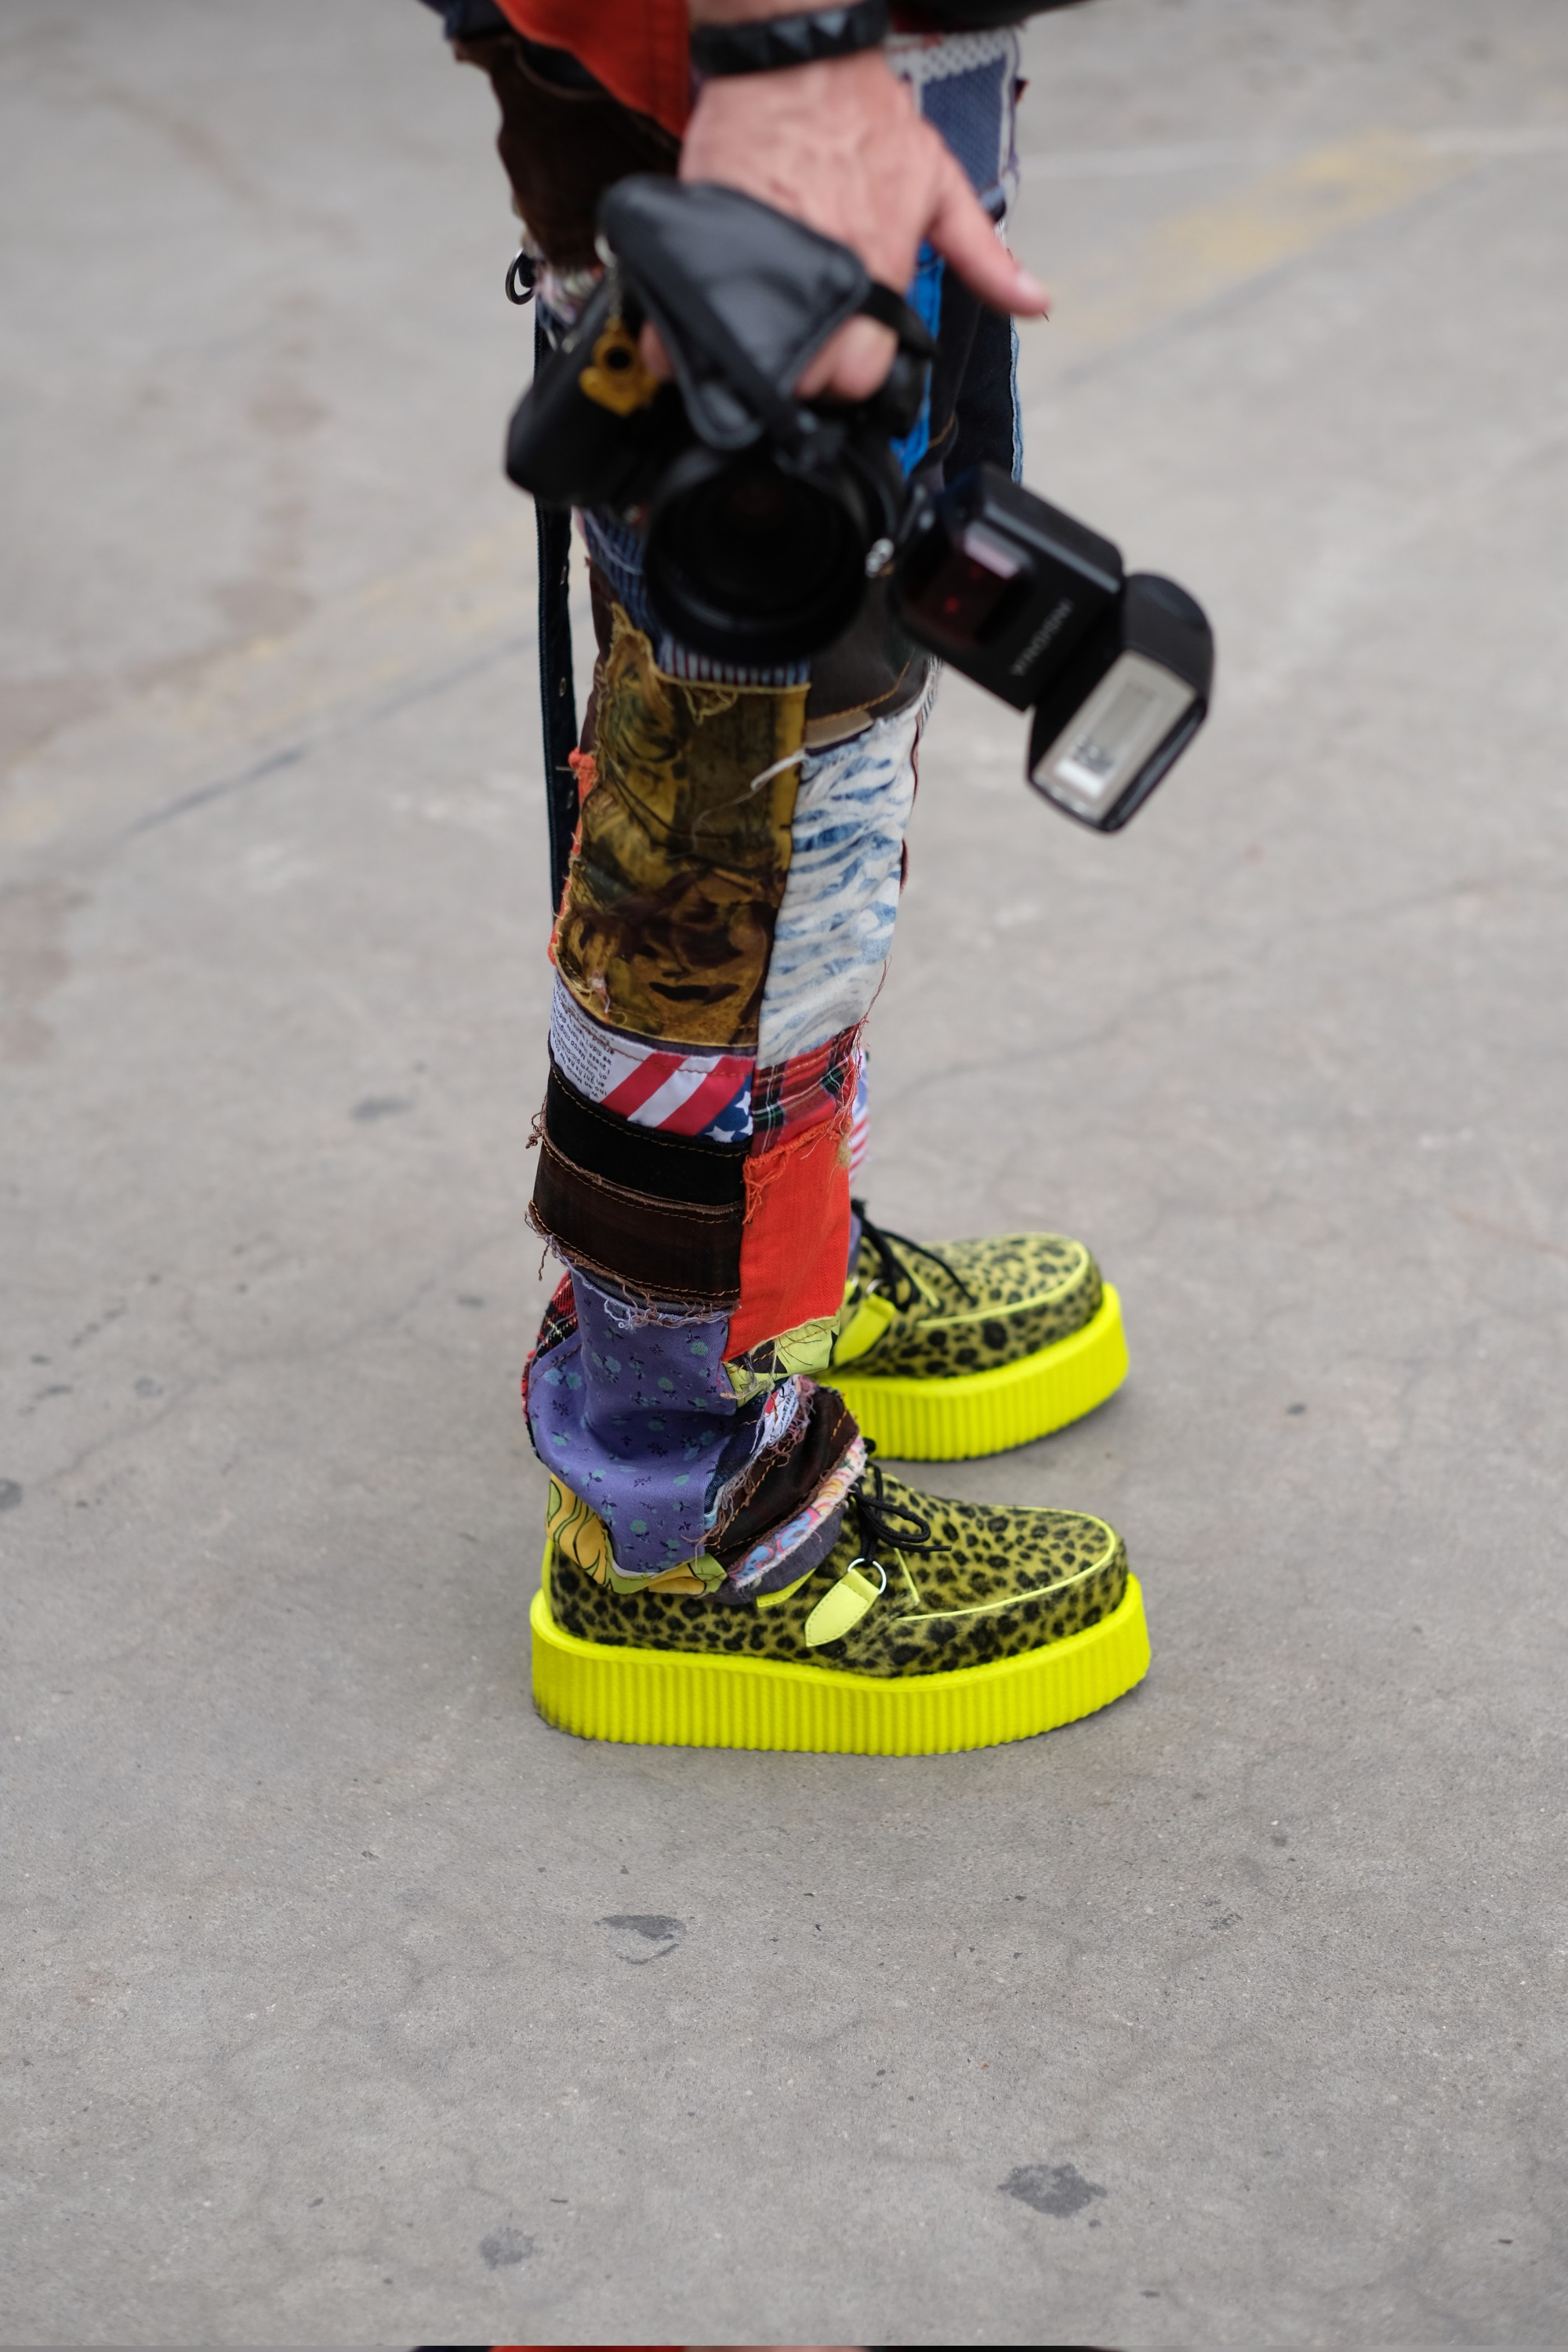 shoes of the photographer